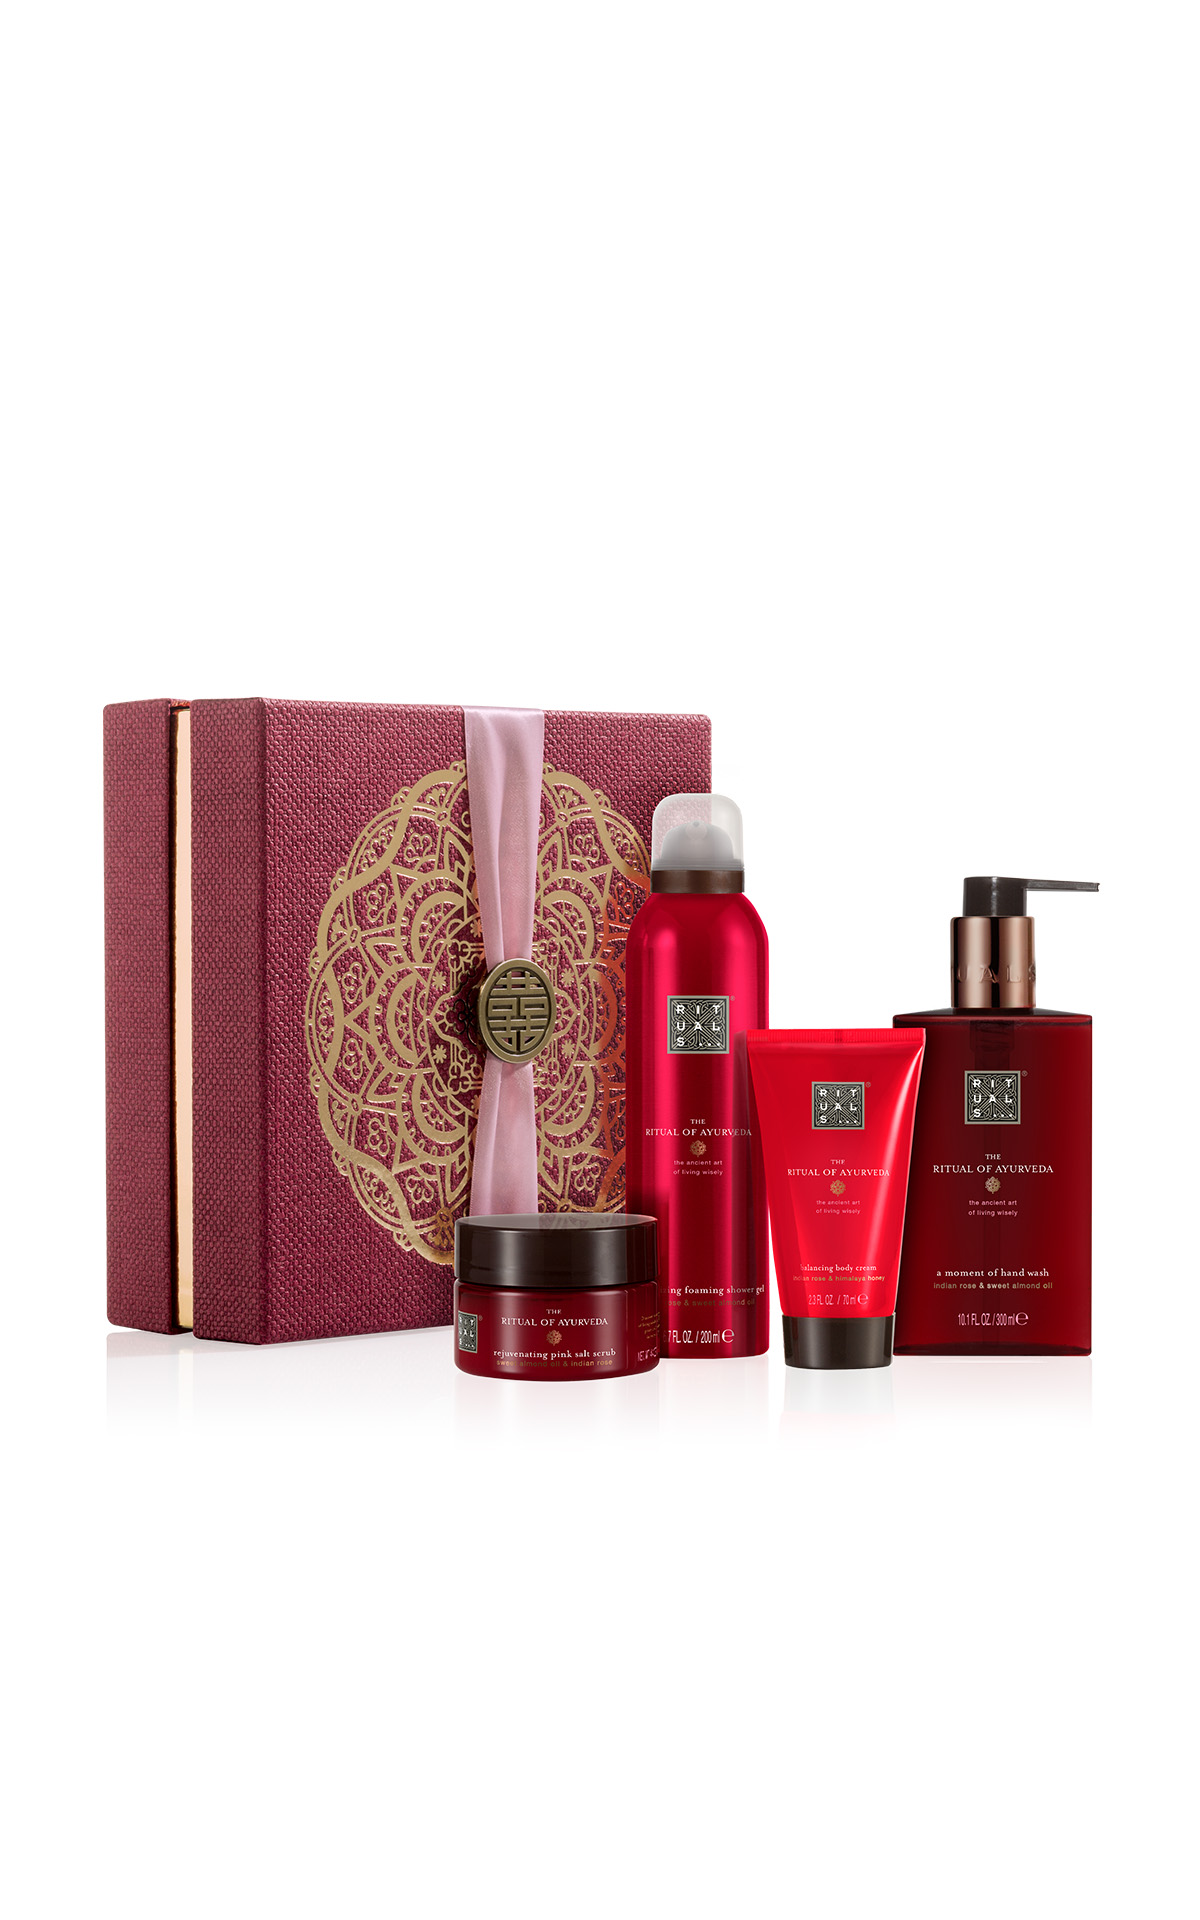 Rituals The ritual of ayurveda giftset (medium) from Bicester Village